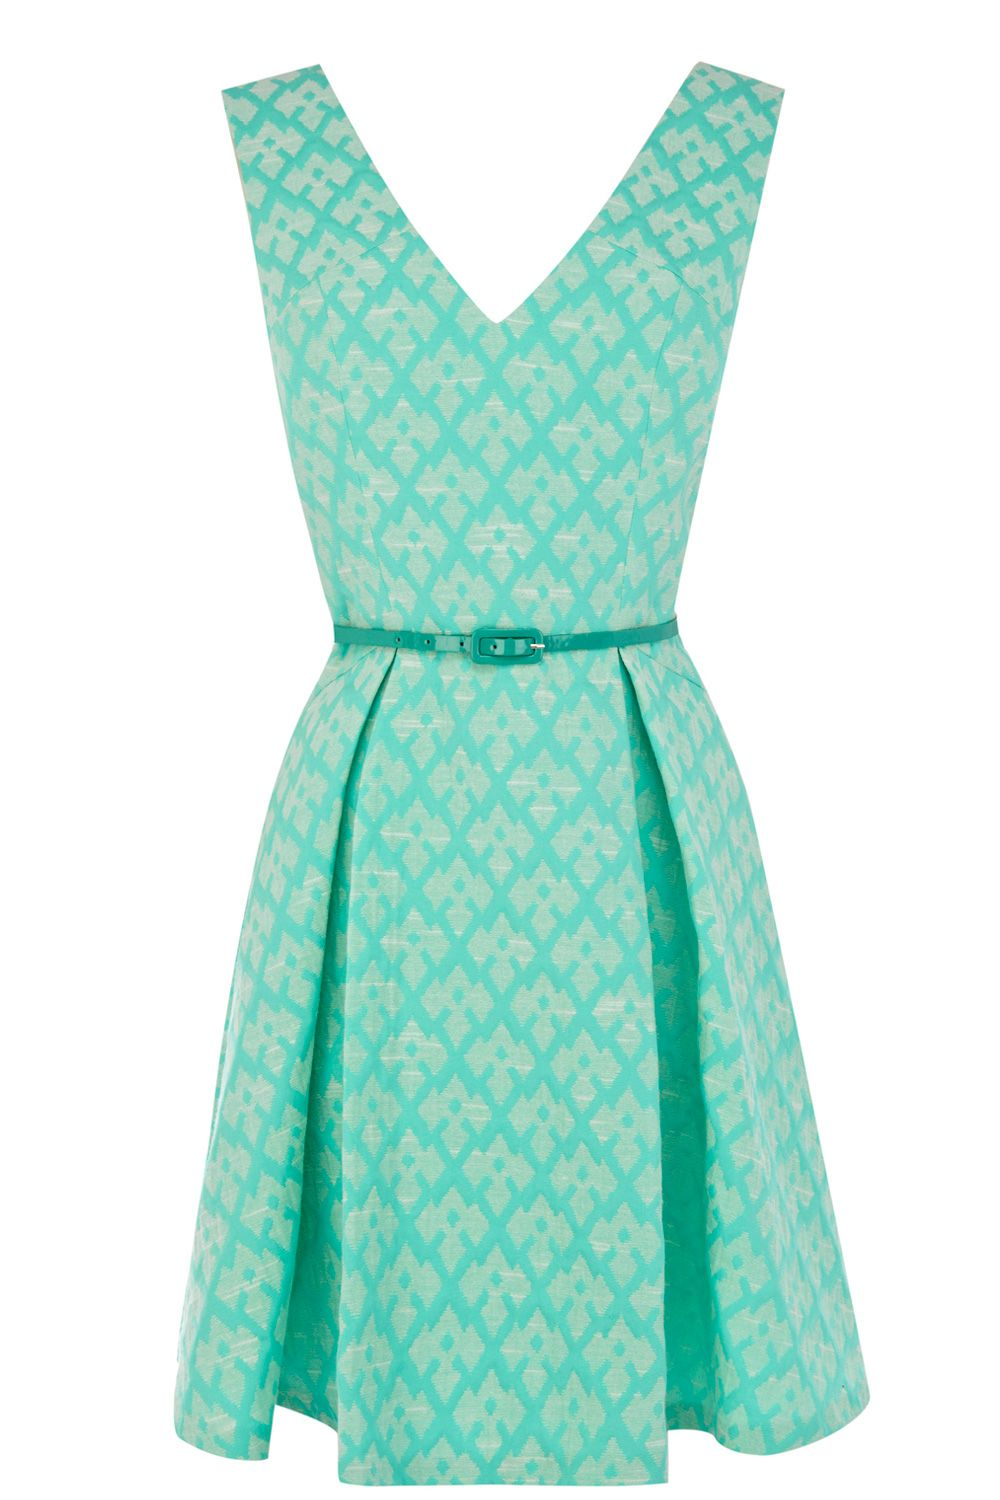 Mint jacquard dress